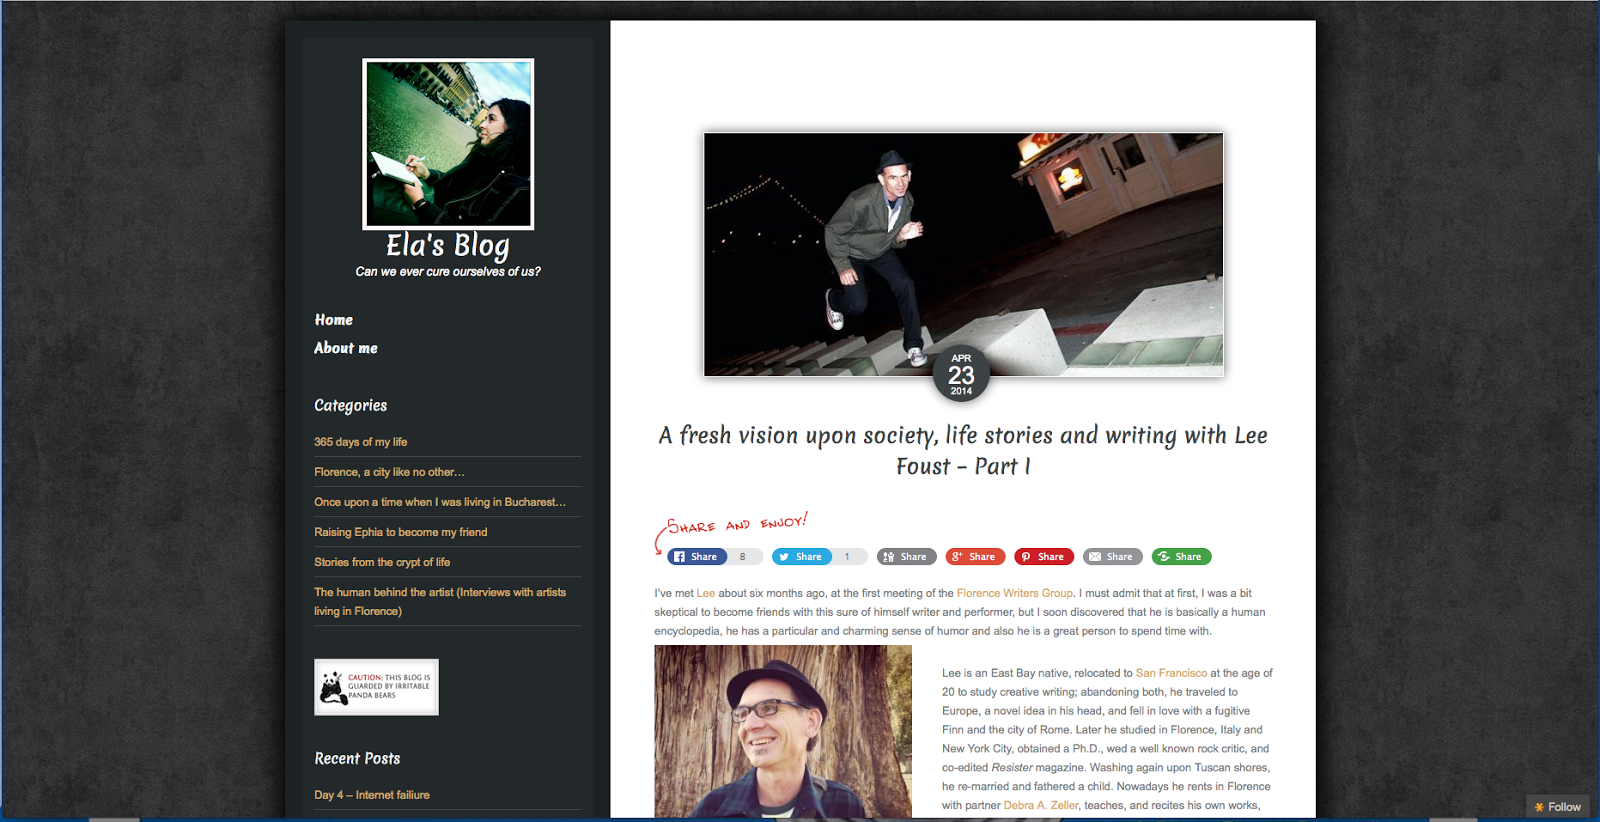 http://writerinflorence.com/a-fresh-vision-upon-society-life-stories-and-writing-with-lee-foust-part-i/